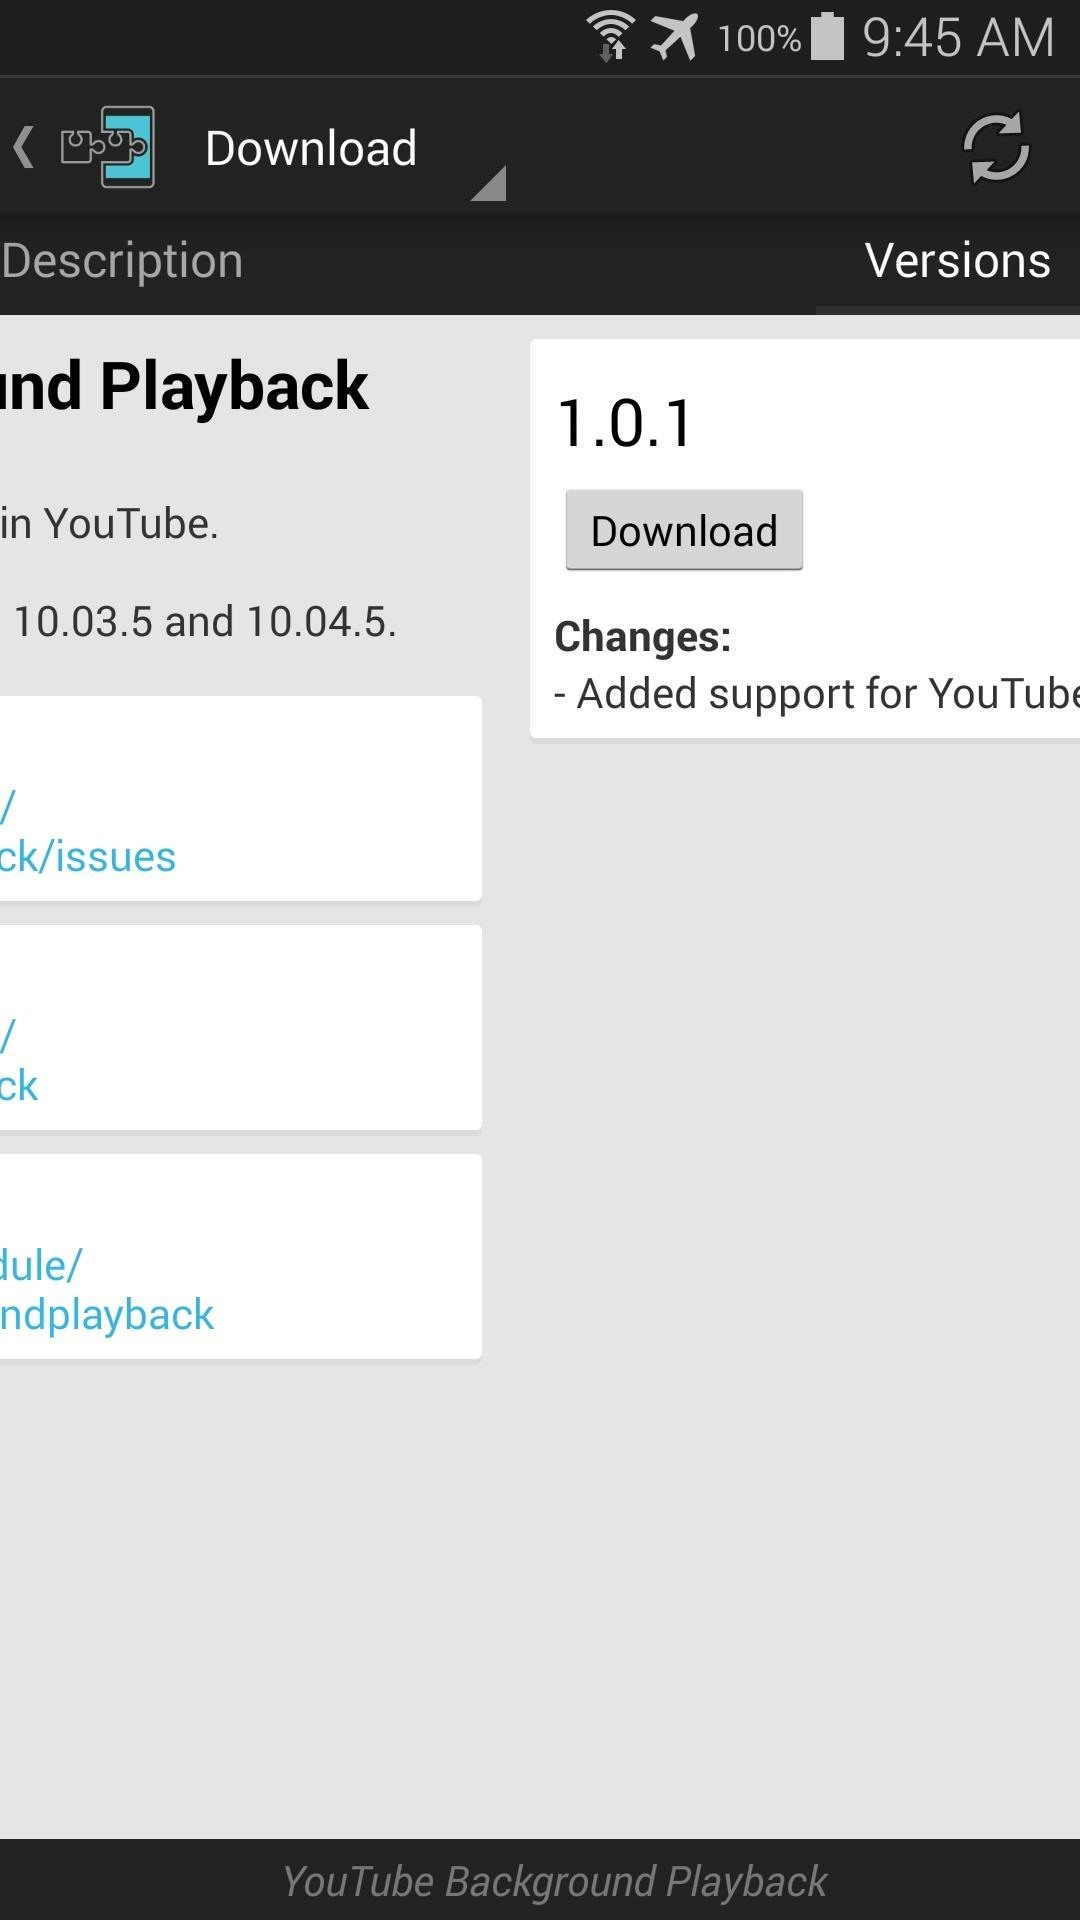 Get Background YouTube Playback on Android Without a Music Key Subscription